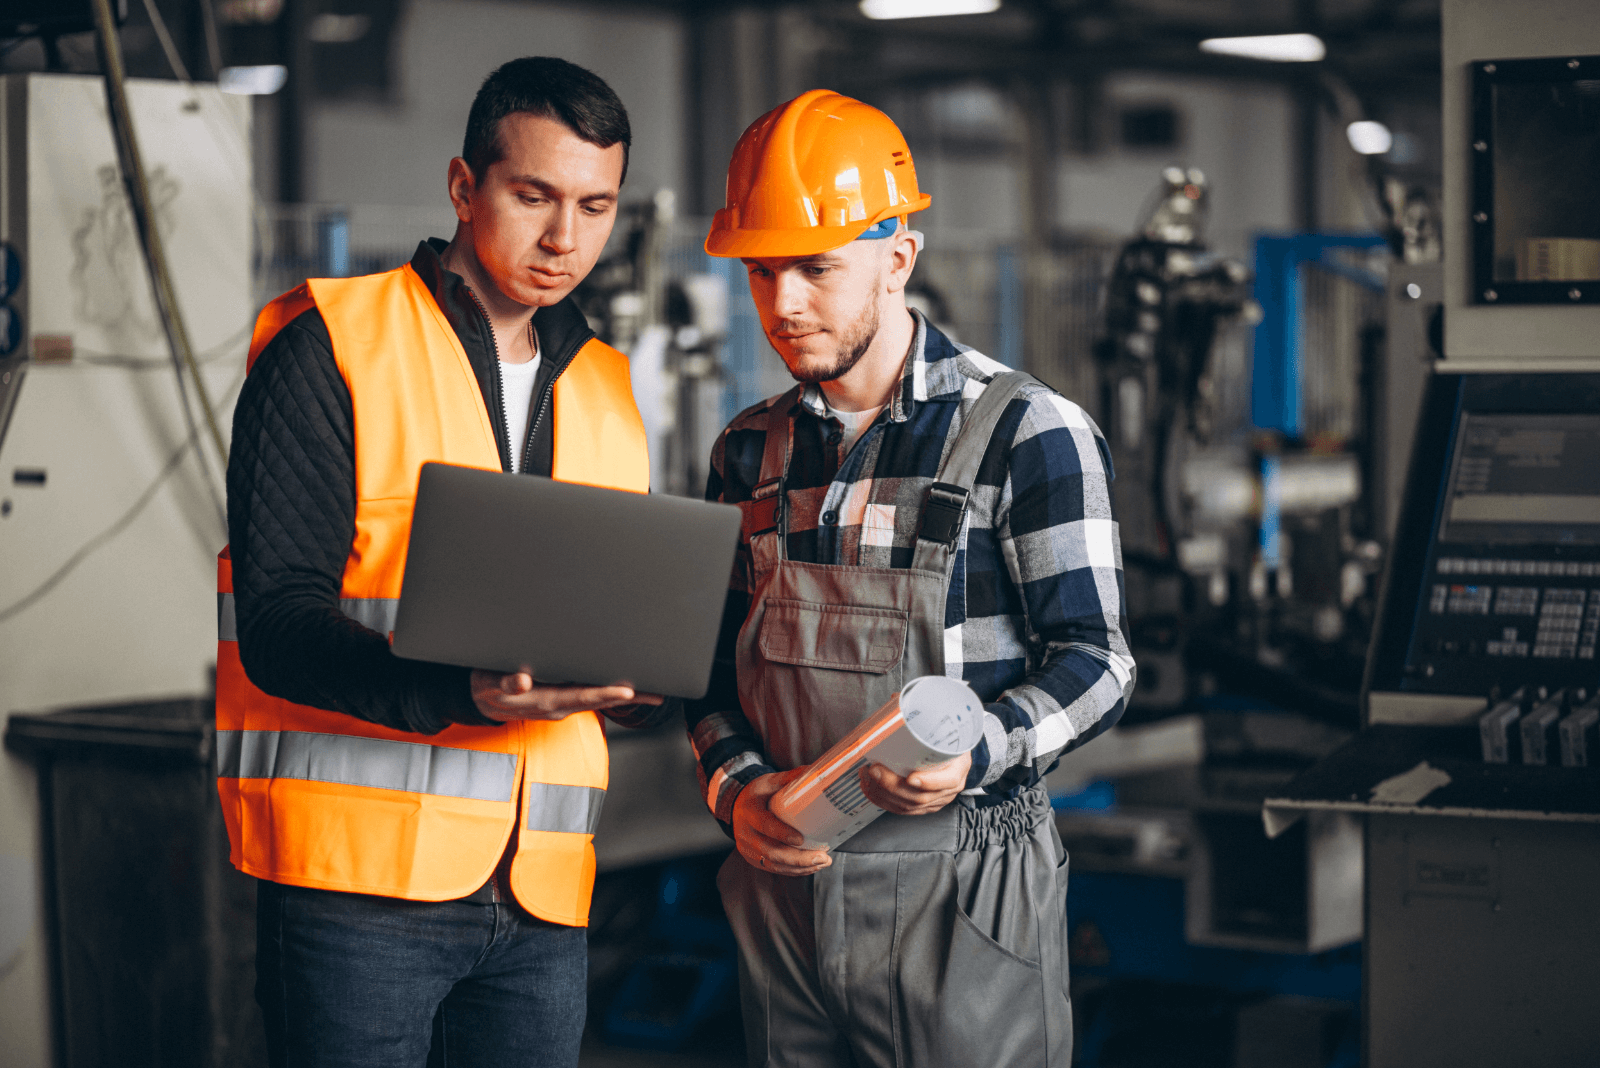 What is Workplace Safety Training and why is it important?